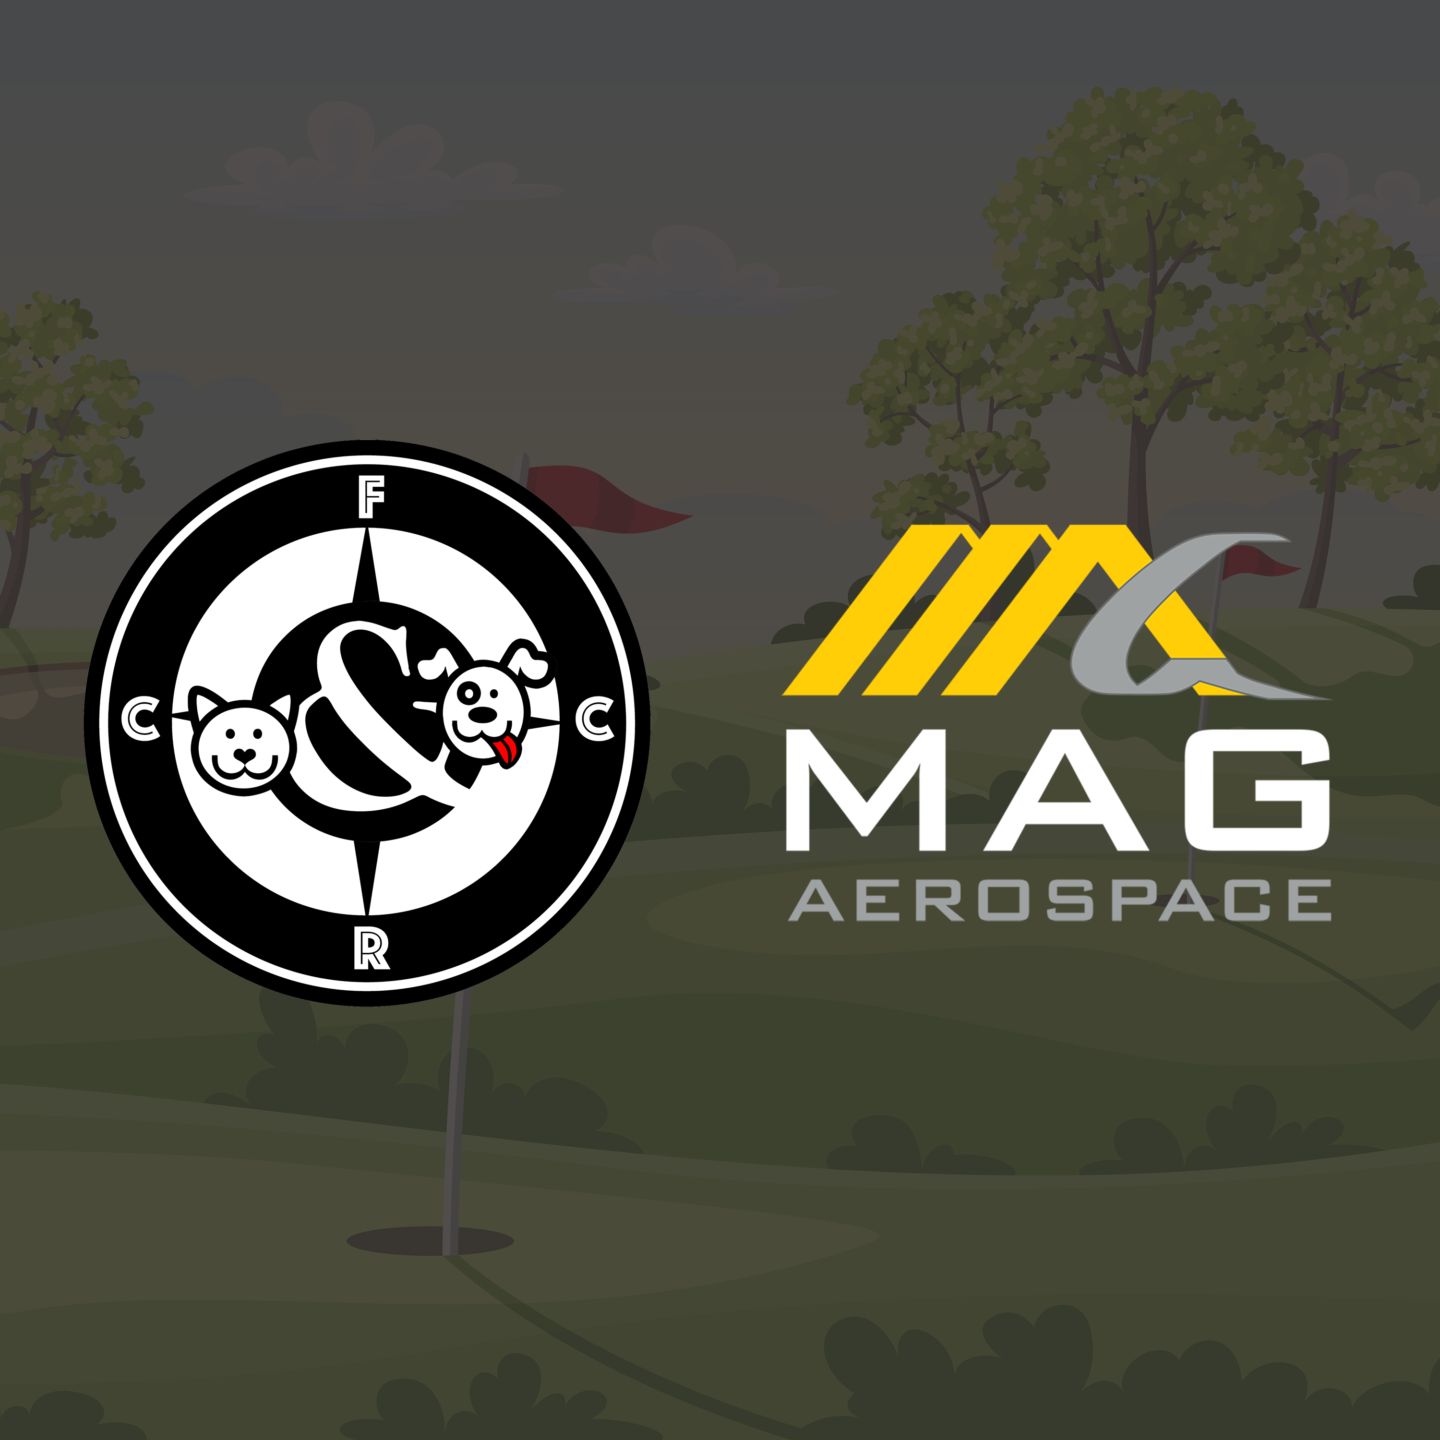 MAG Aerospace Hosts Benefit Golf Tournament